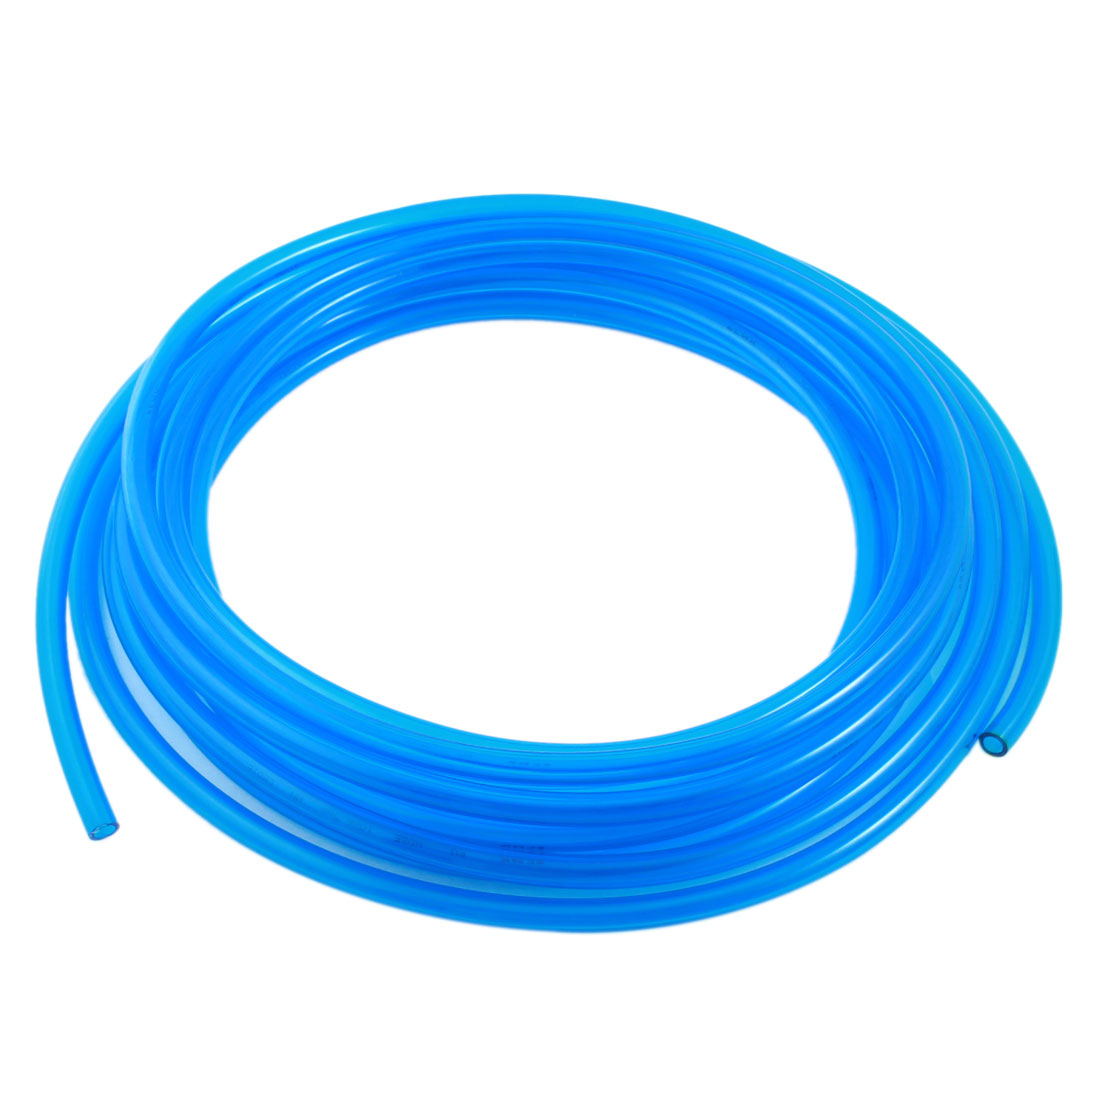 Blue Polyurethane 6.5mm x 10mm 10M/33ft Long Flexible Air PU Tubing Pneumatic Pipe Tube Hose